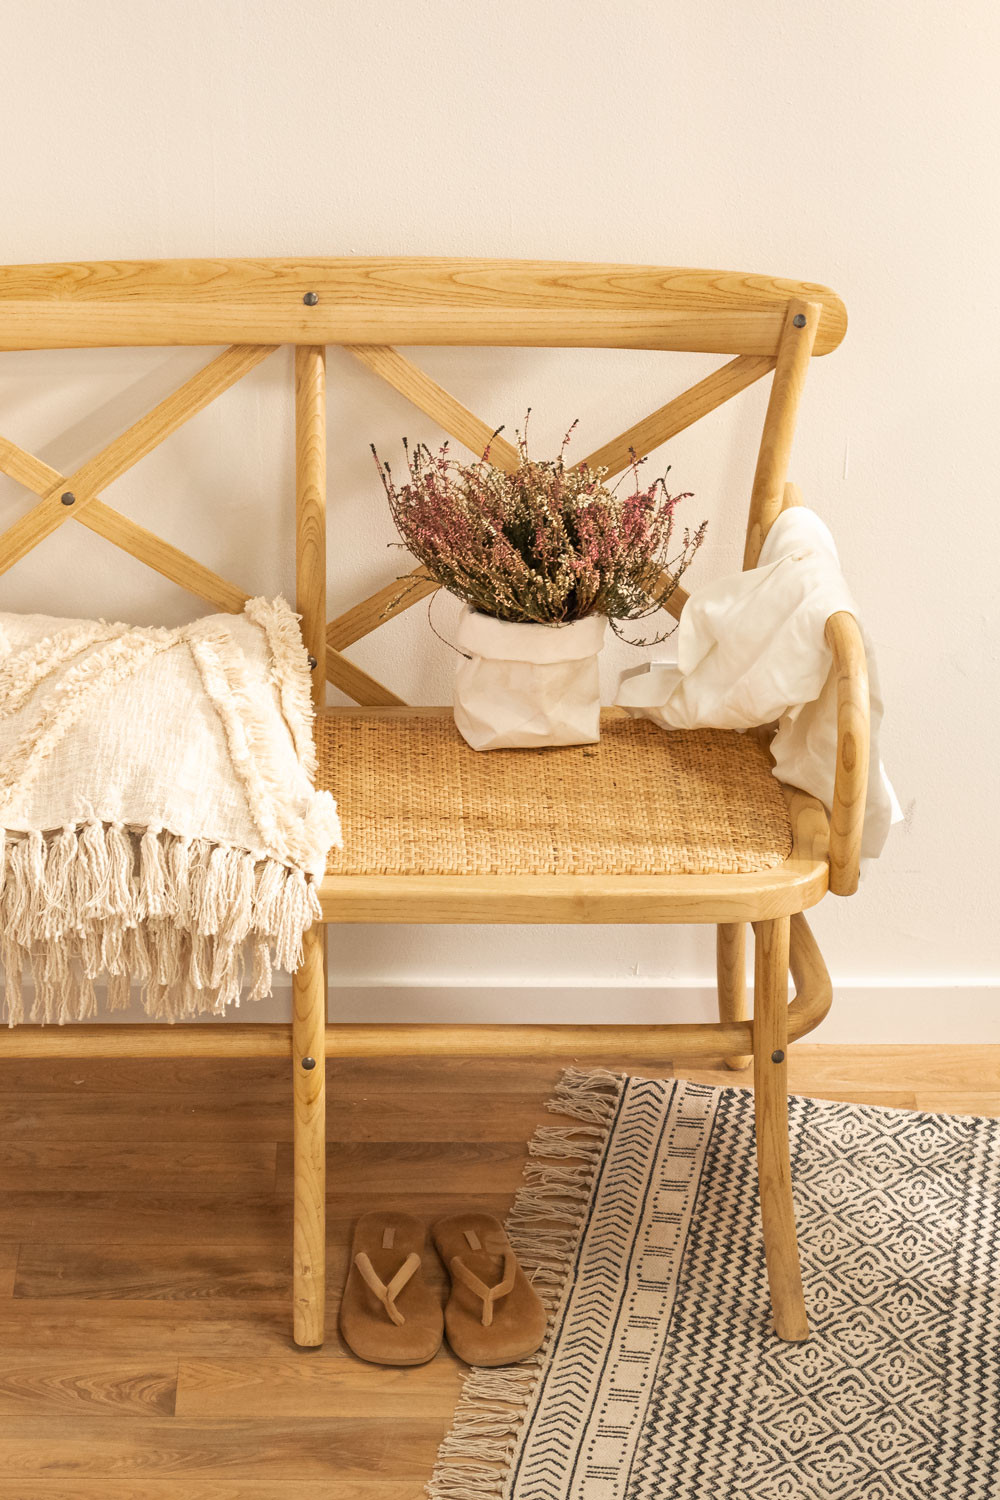 Wooden Bench Otax , gallery image 1